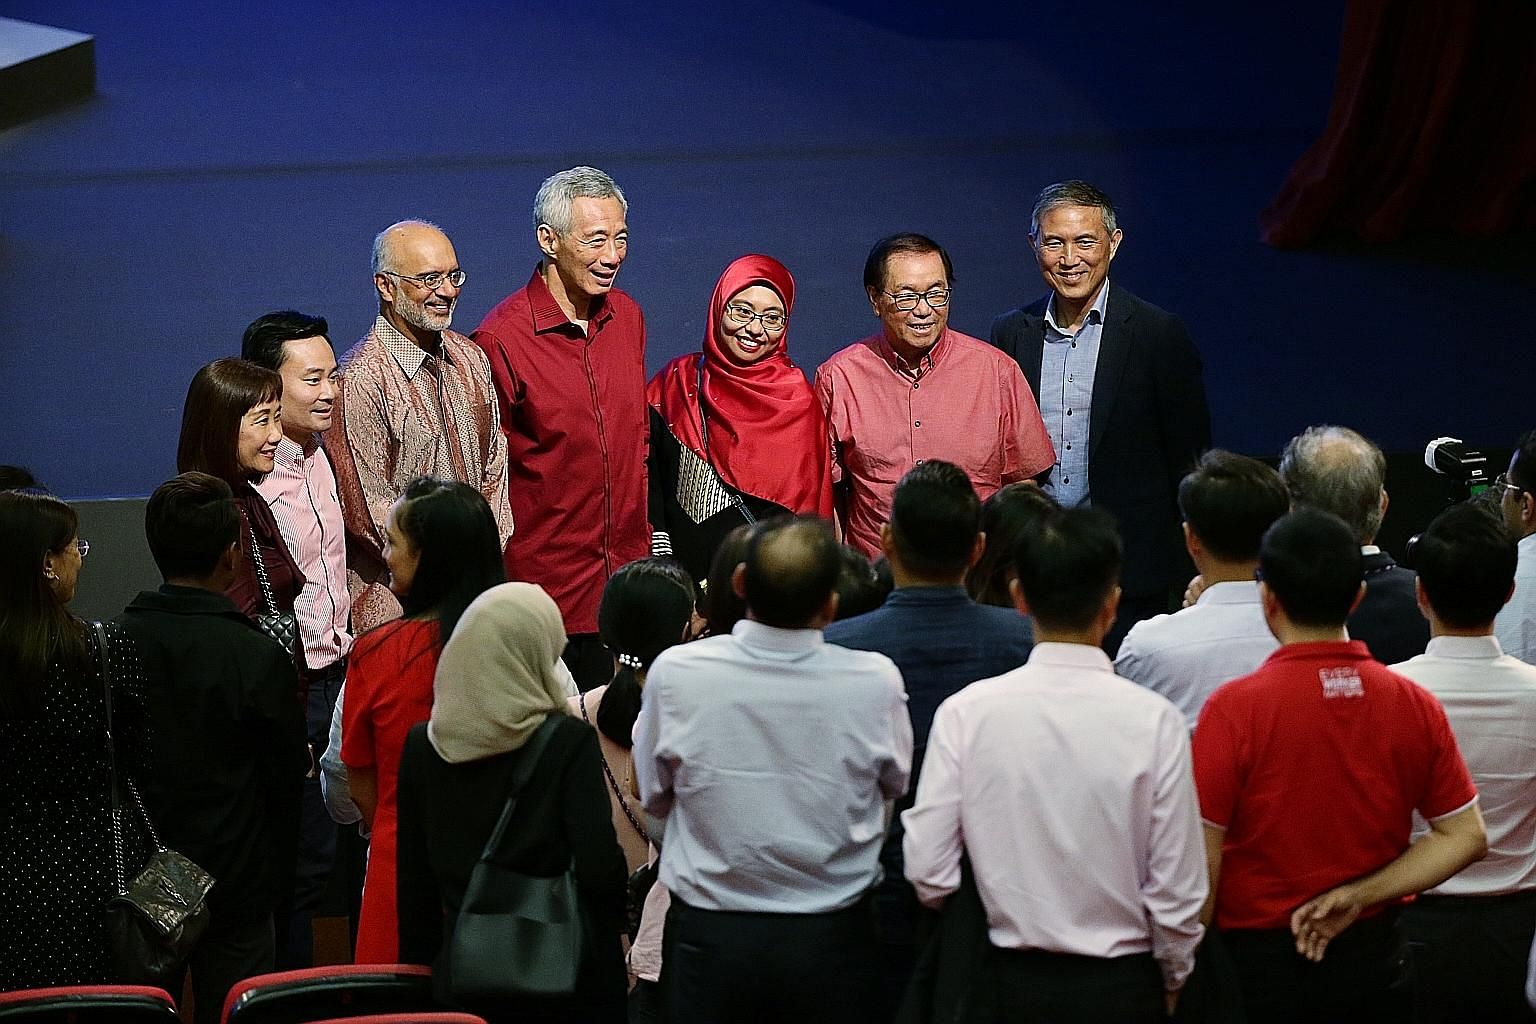 Prime Minister Lee Hsien Loong, flanked by DBS chief executive Piyush Gupta and DBS customer service officer Nahariah Mohd Nor, as well as DBS chairman Peter Seah (second from right) and other bank employees at ITE College Central yesterday. At the N